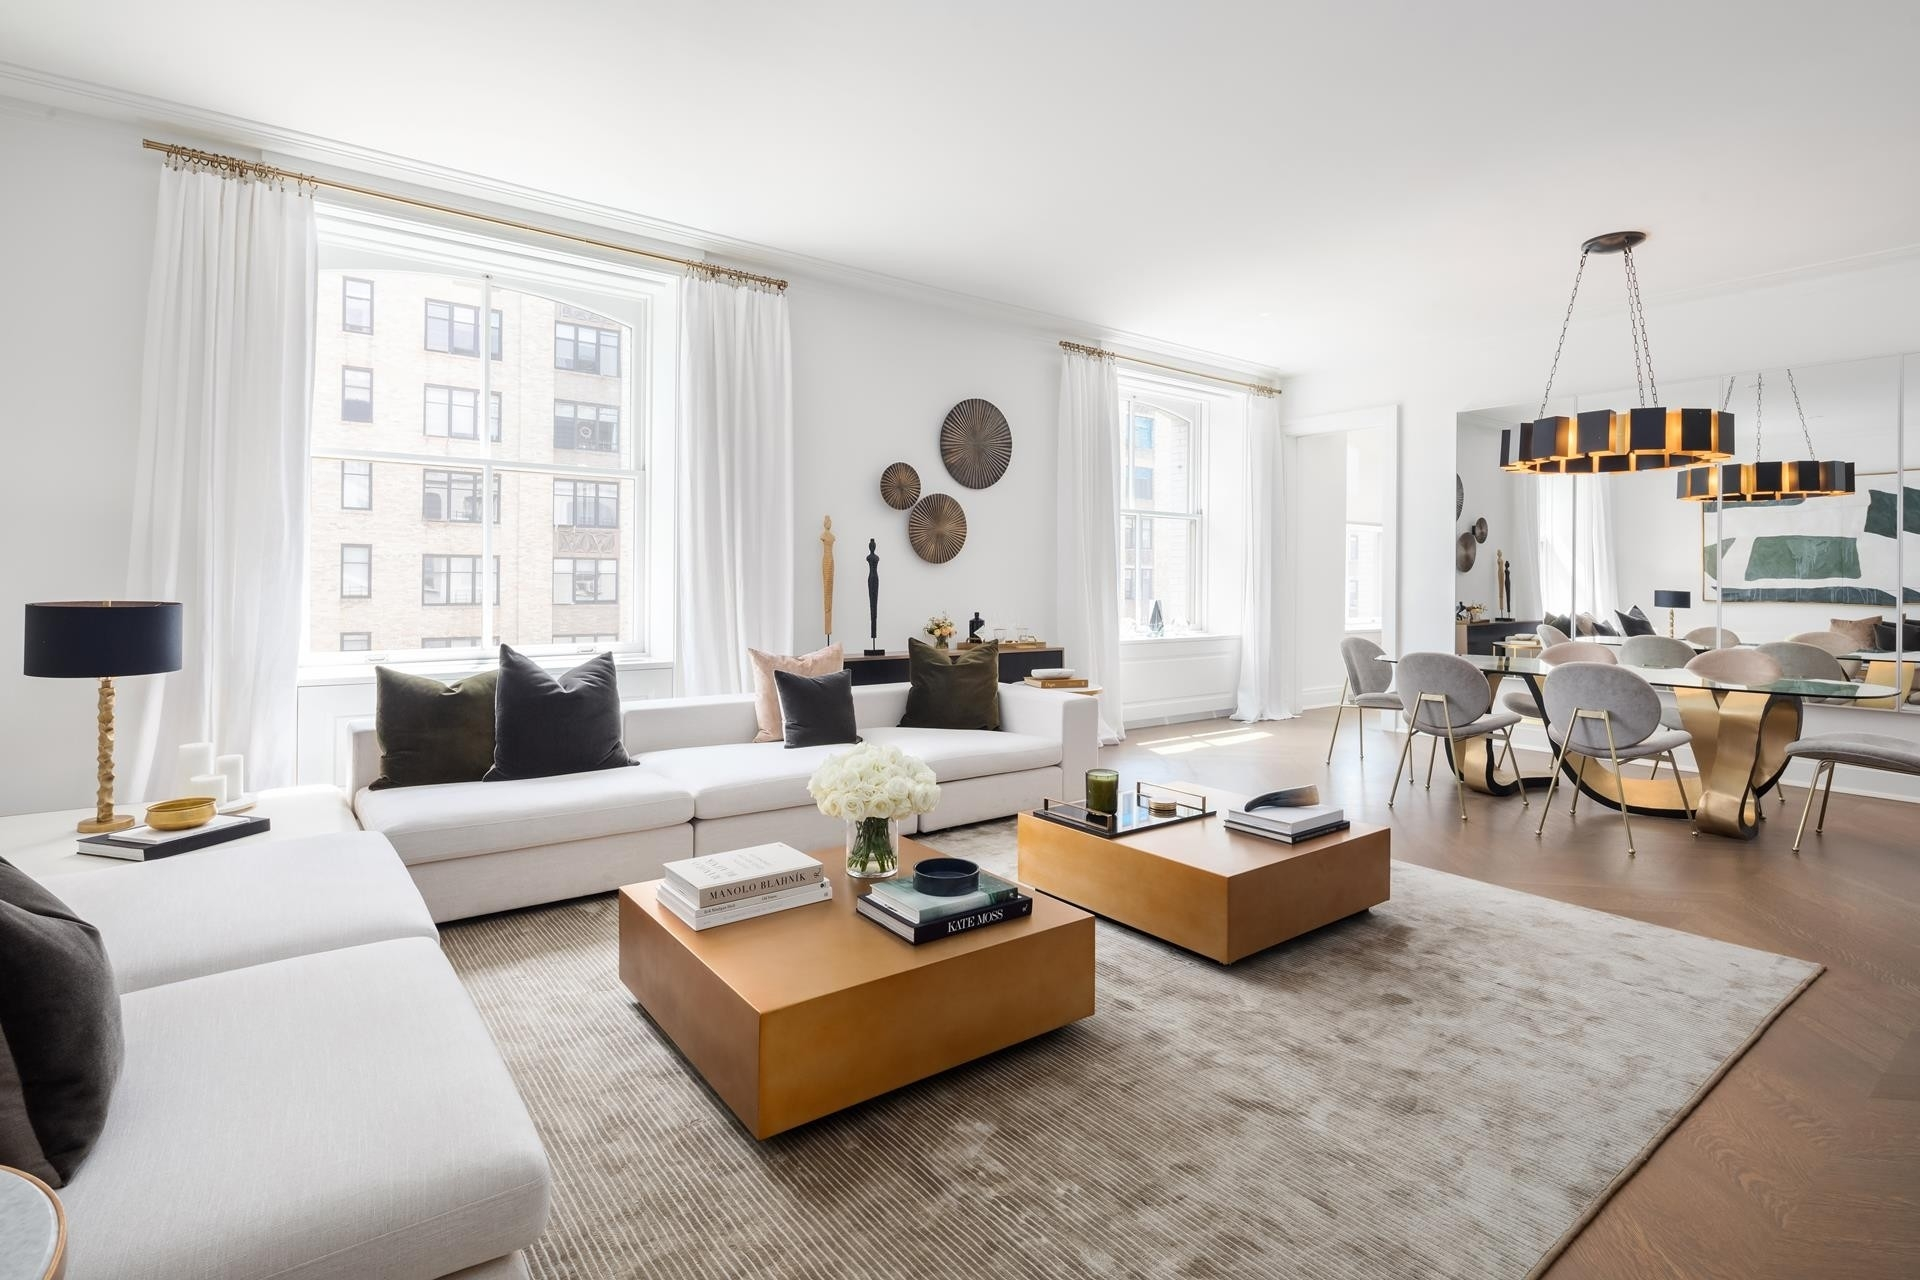 Condominium at The Belnord, 225 West 86th St, 416 Upper West Side, New York